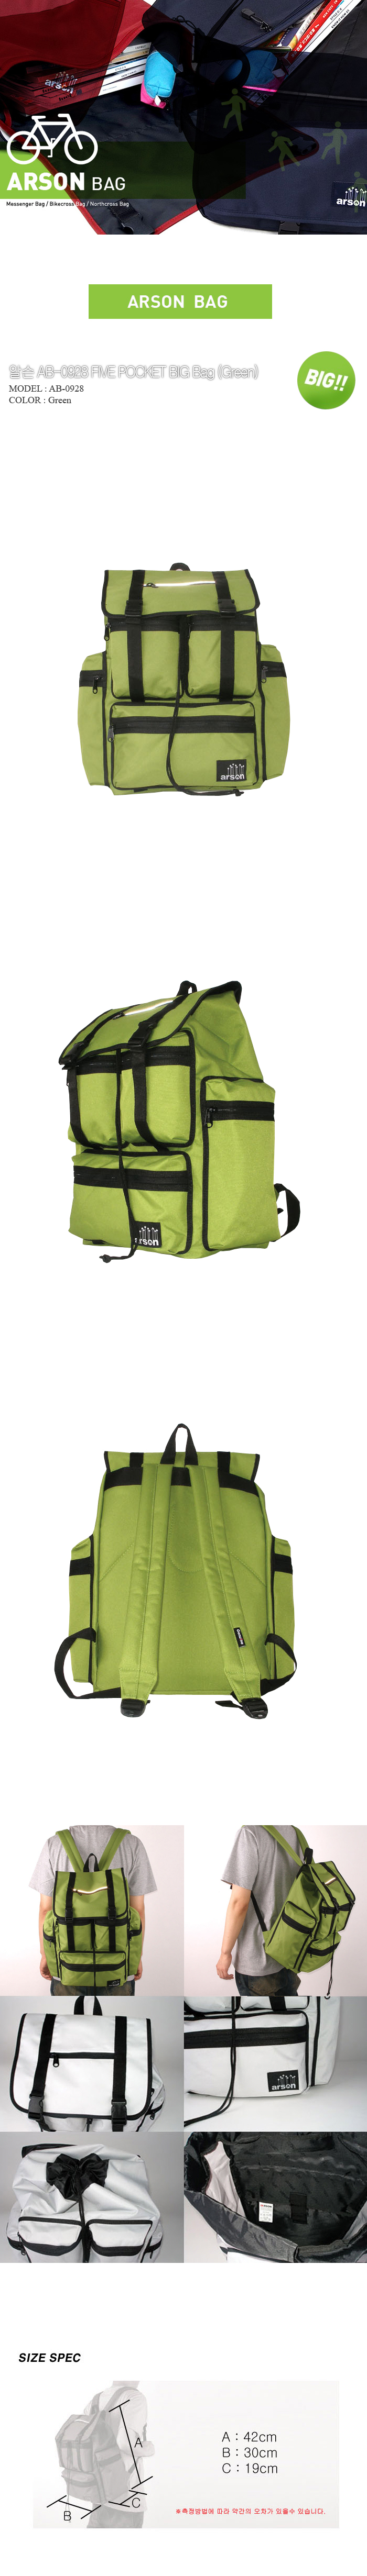 [ ARSON ] AB-0928 (Green)/Backpack School Bag